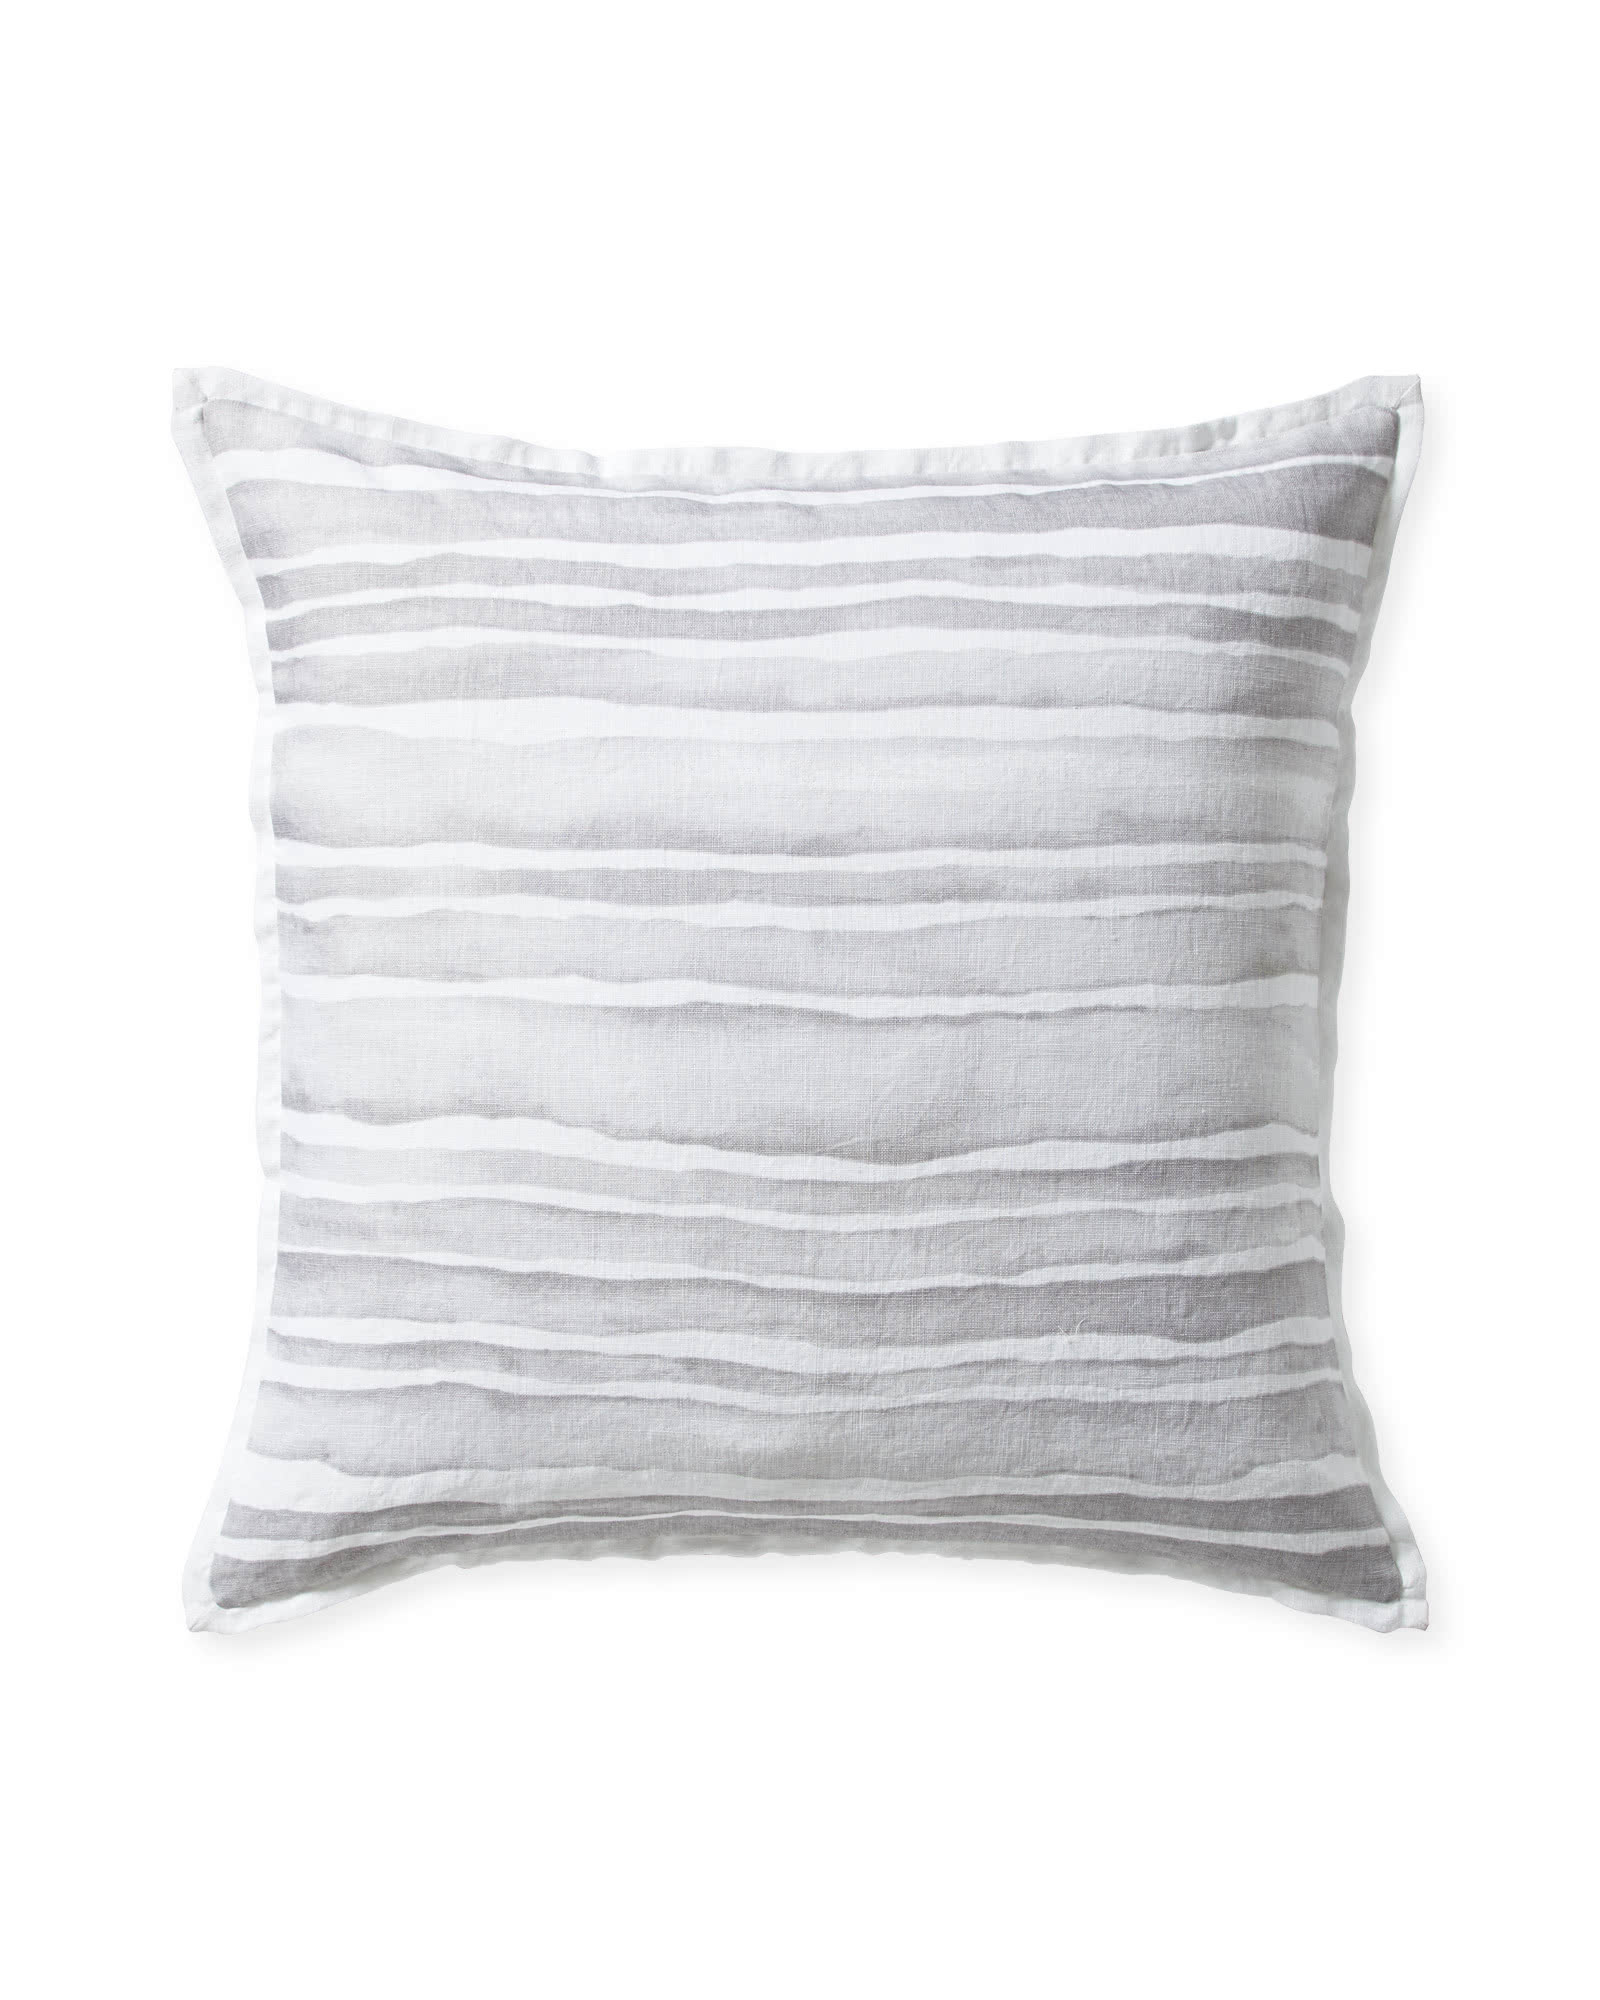 Cove Pillow Cover, Nickel